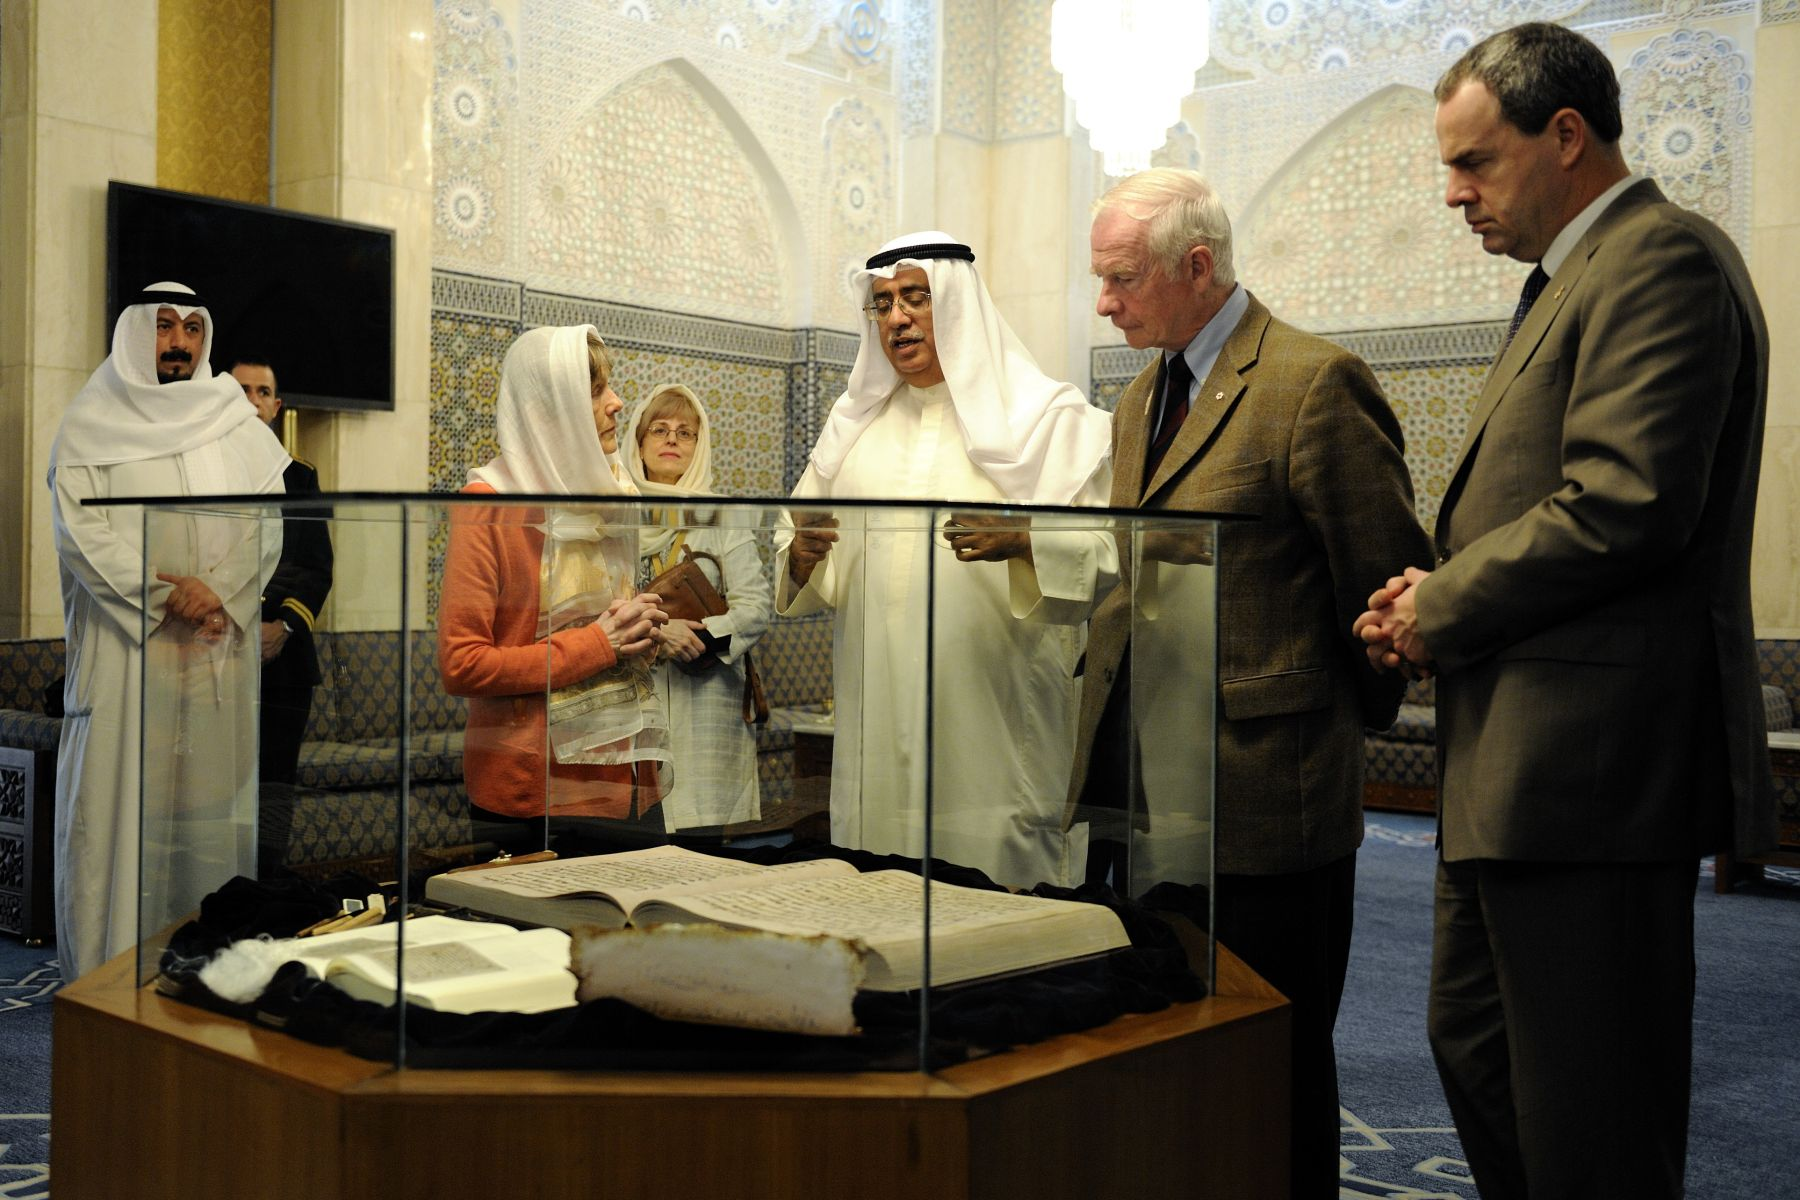 Their Excellencies visited the Grand Mosque in Kuwait City.